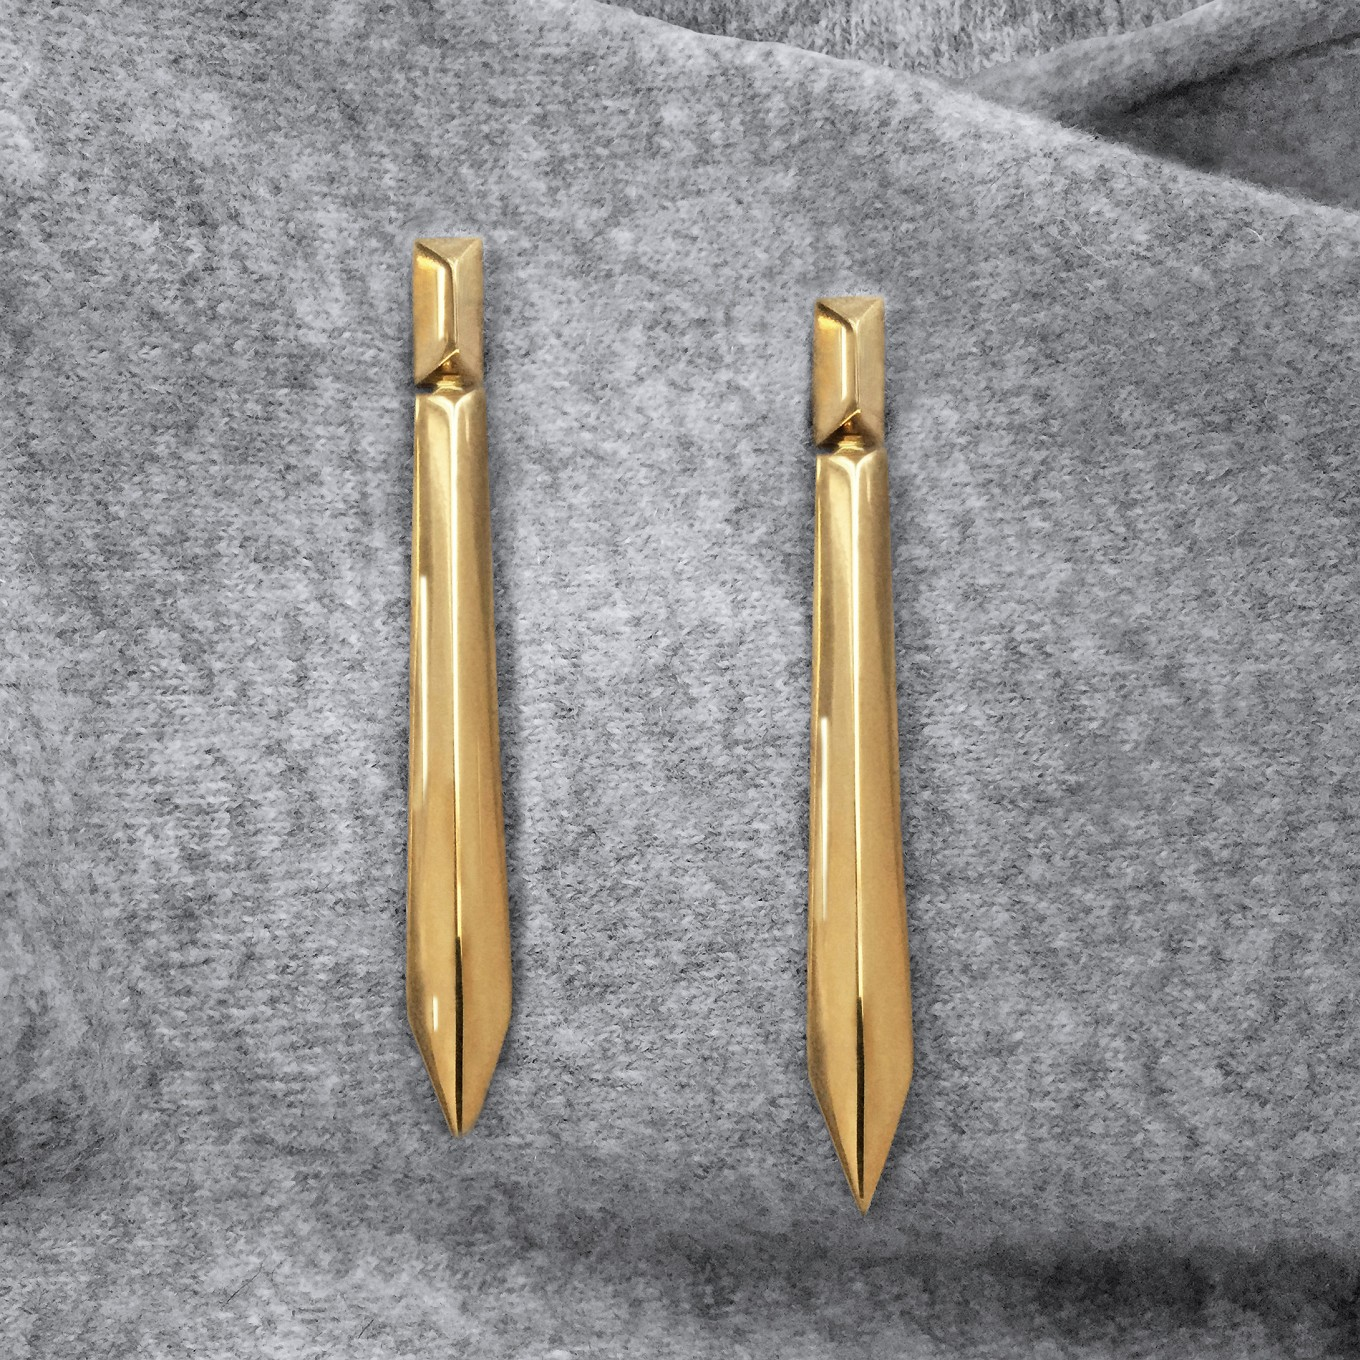 G SERIES DOUBLE PYRAMID EARRINGS IN YELLOW GOLD